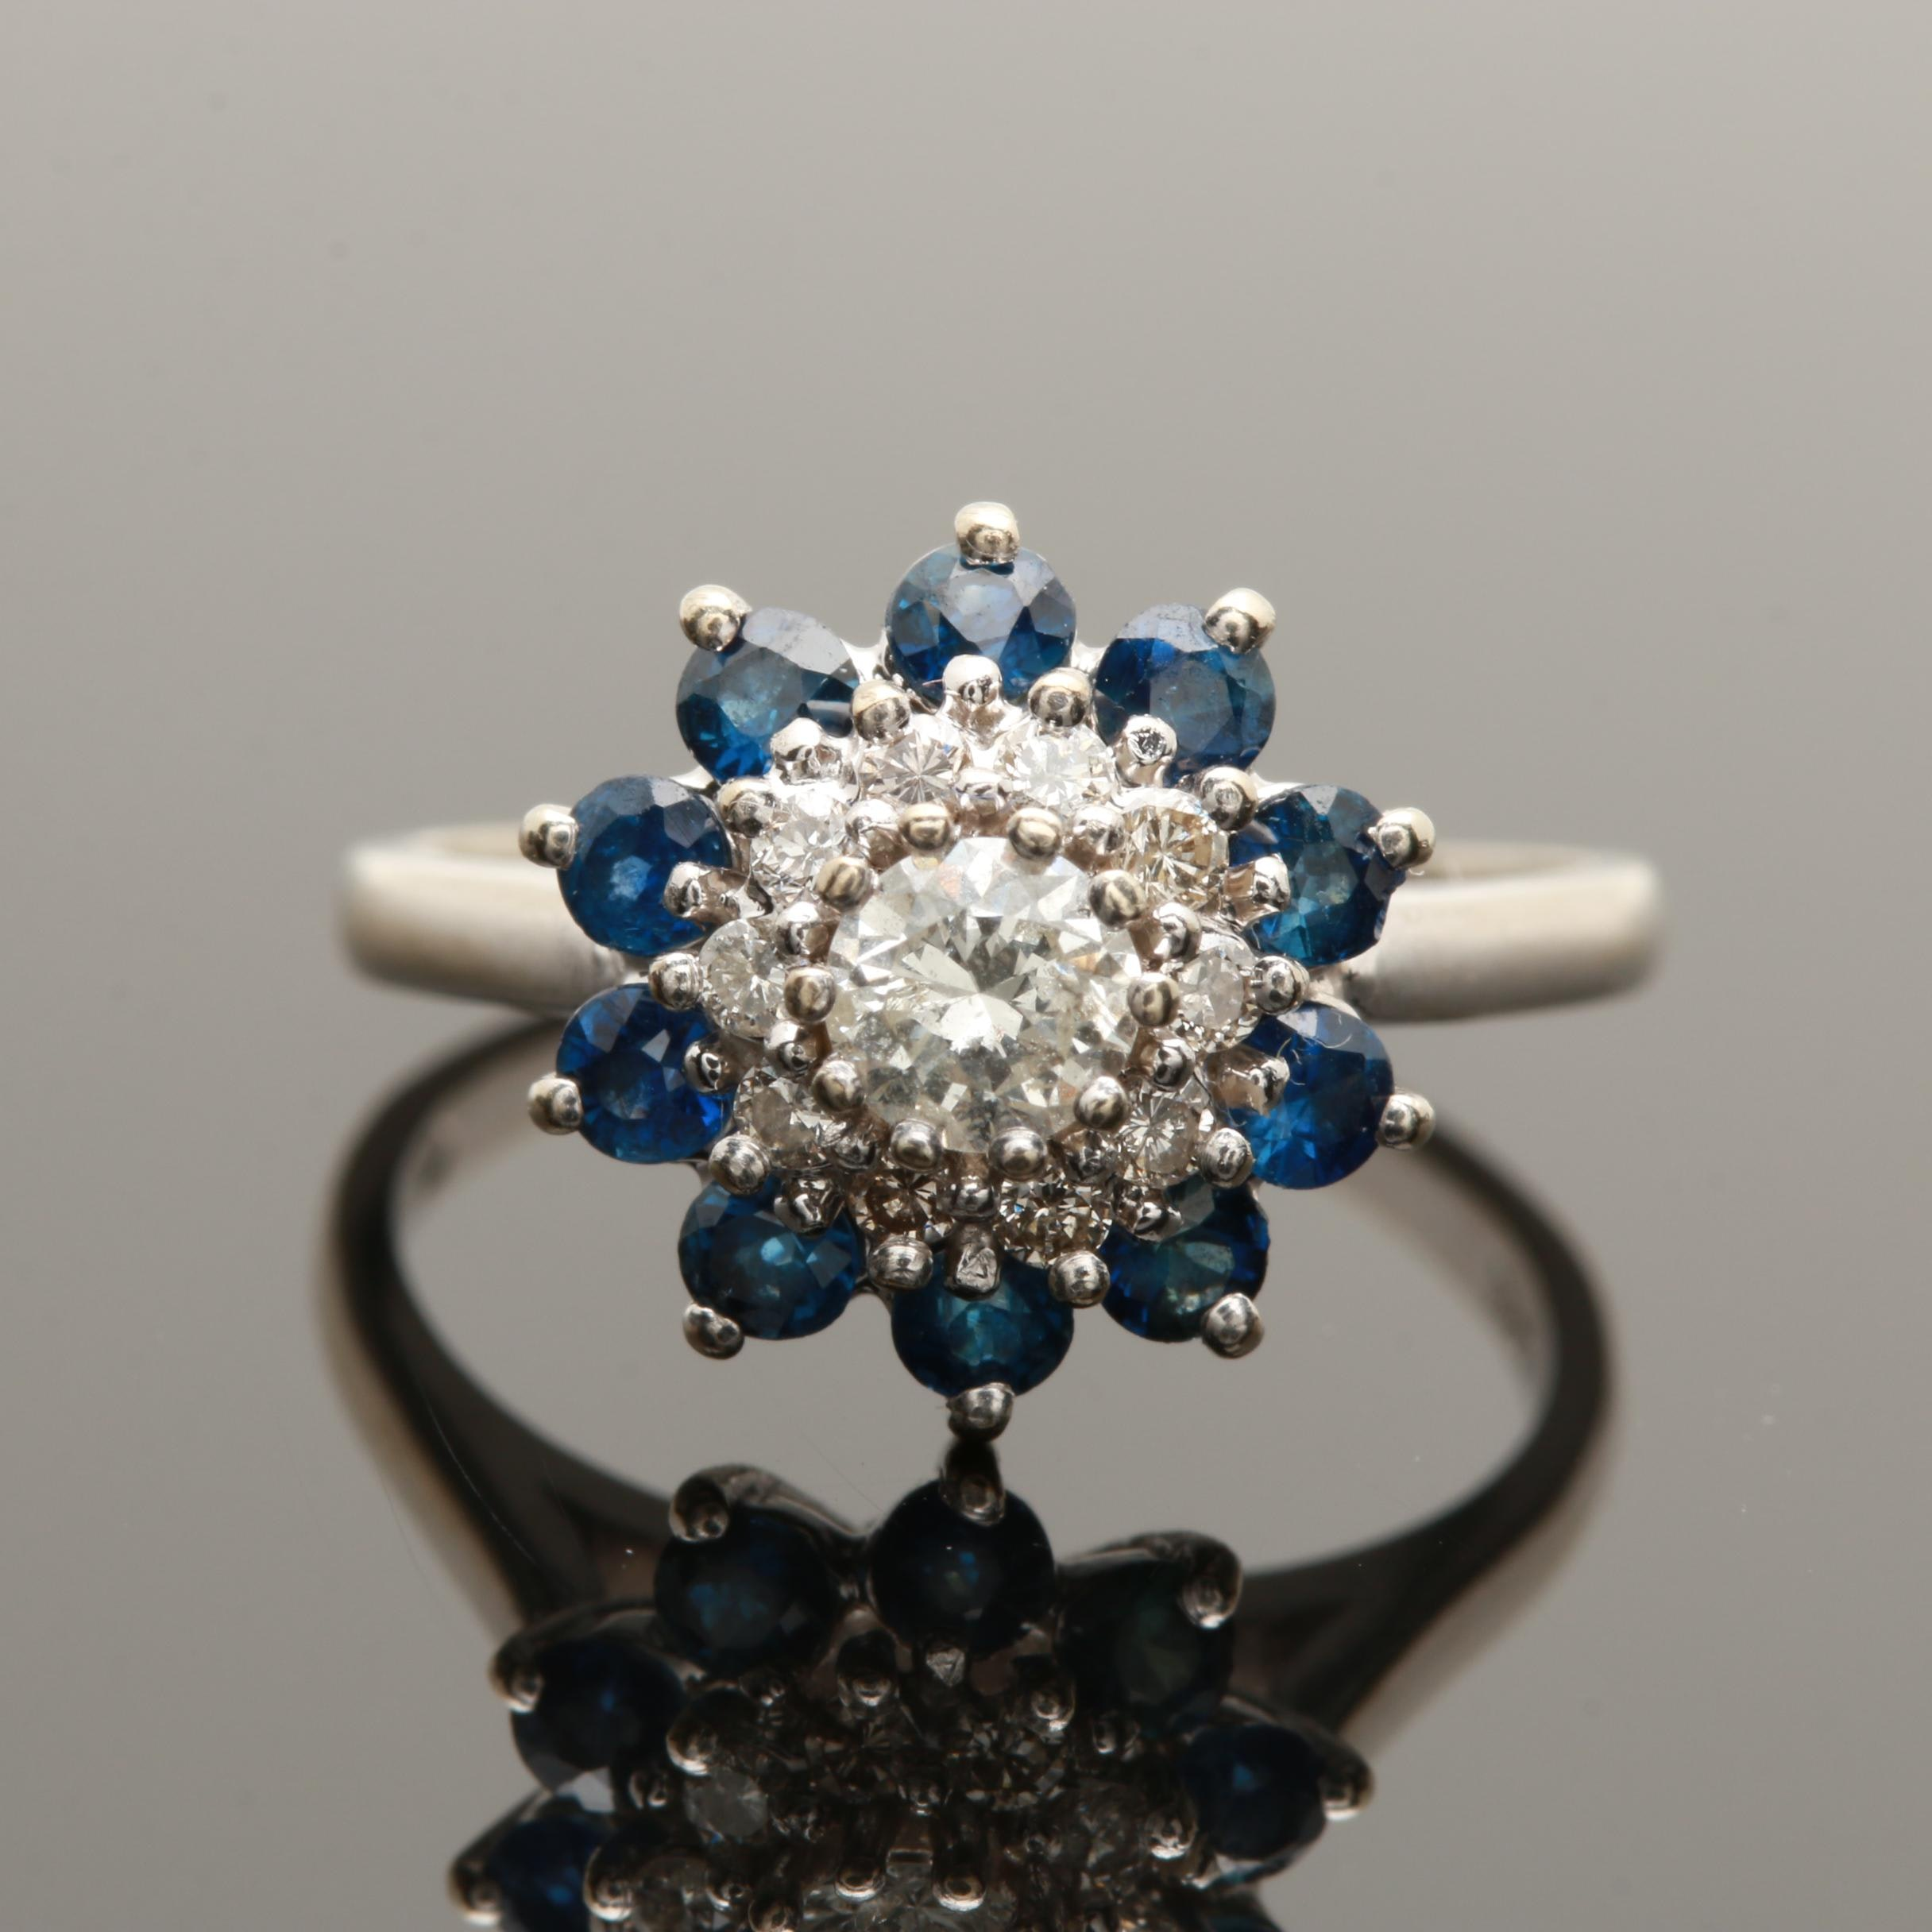 14K White Gold Diamond and Blue Sapphire Floral Ring